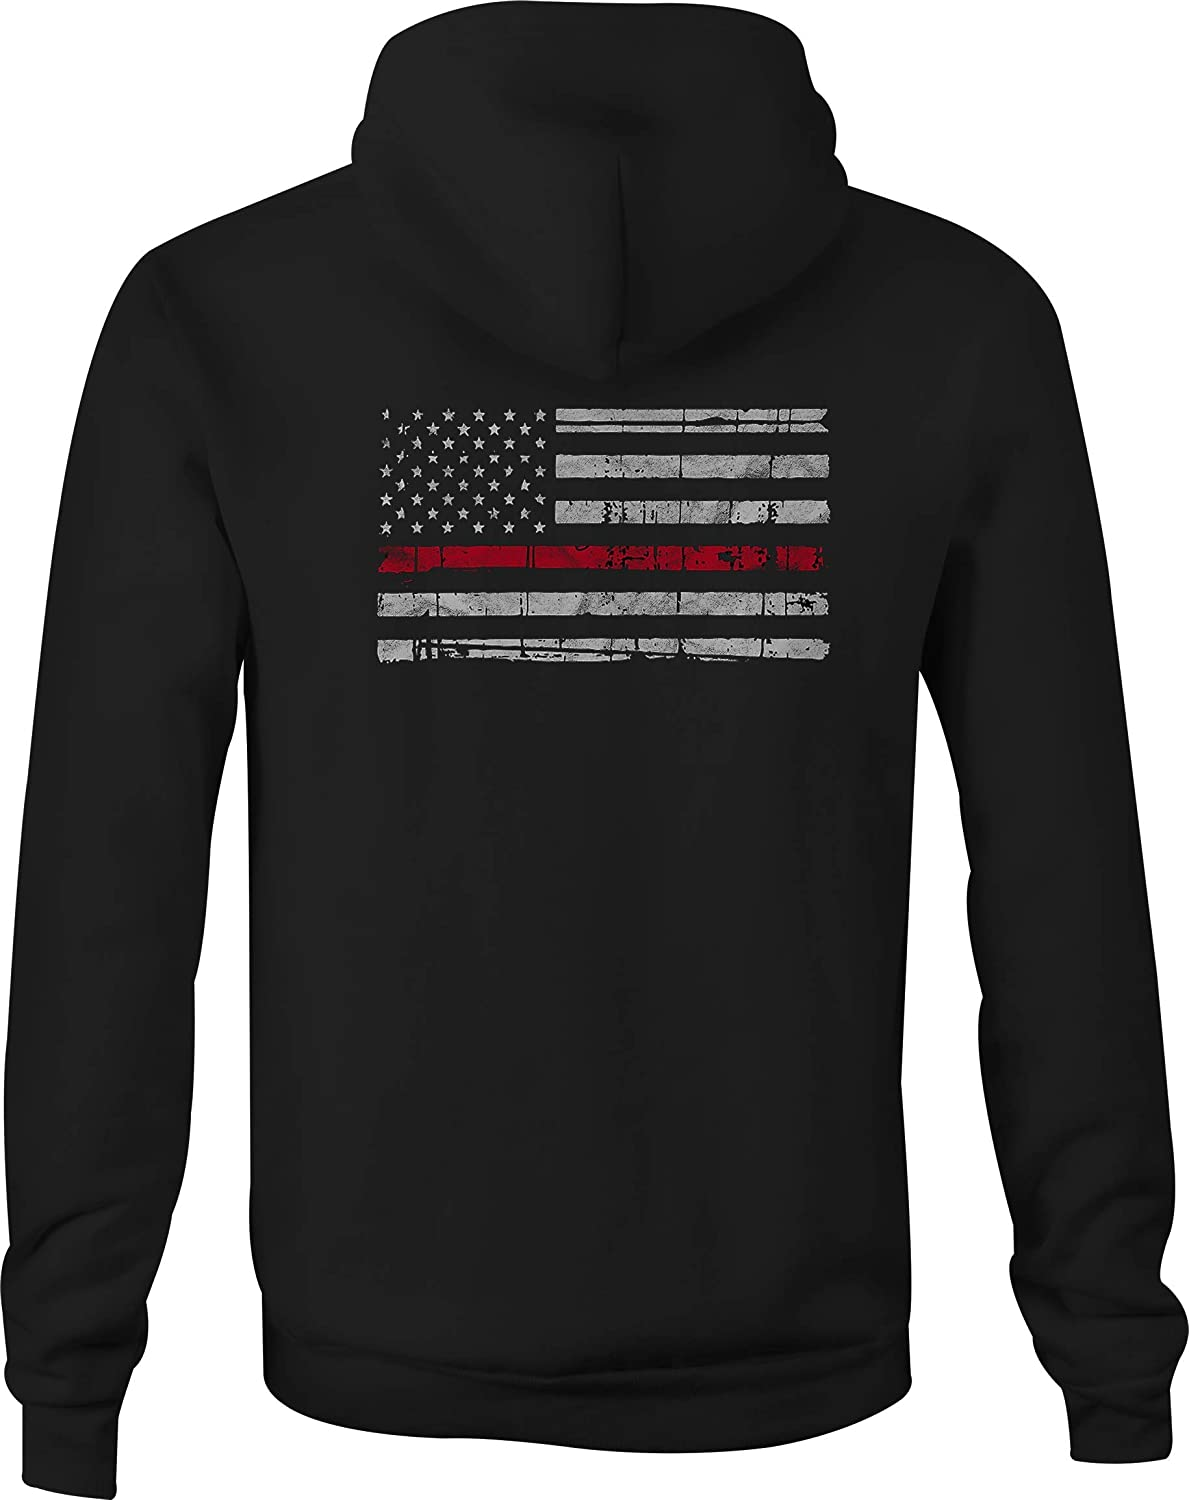 Zip Up Hoodie Arizona Map Hooded Sweatshirt for Men